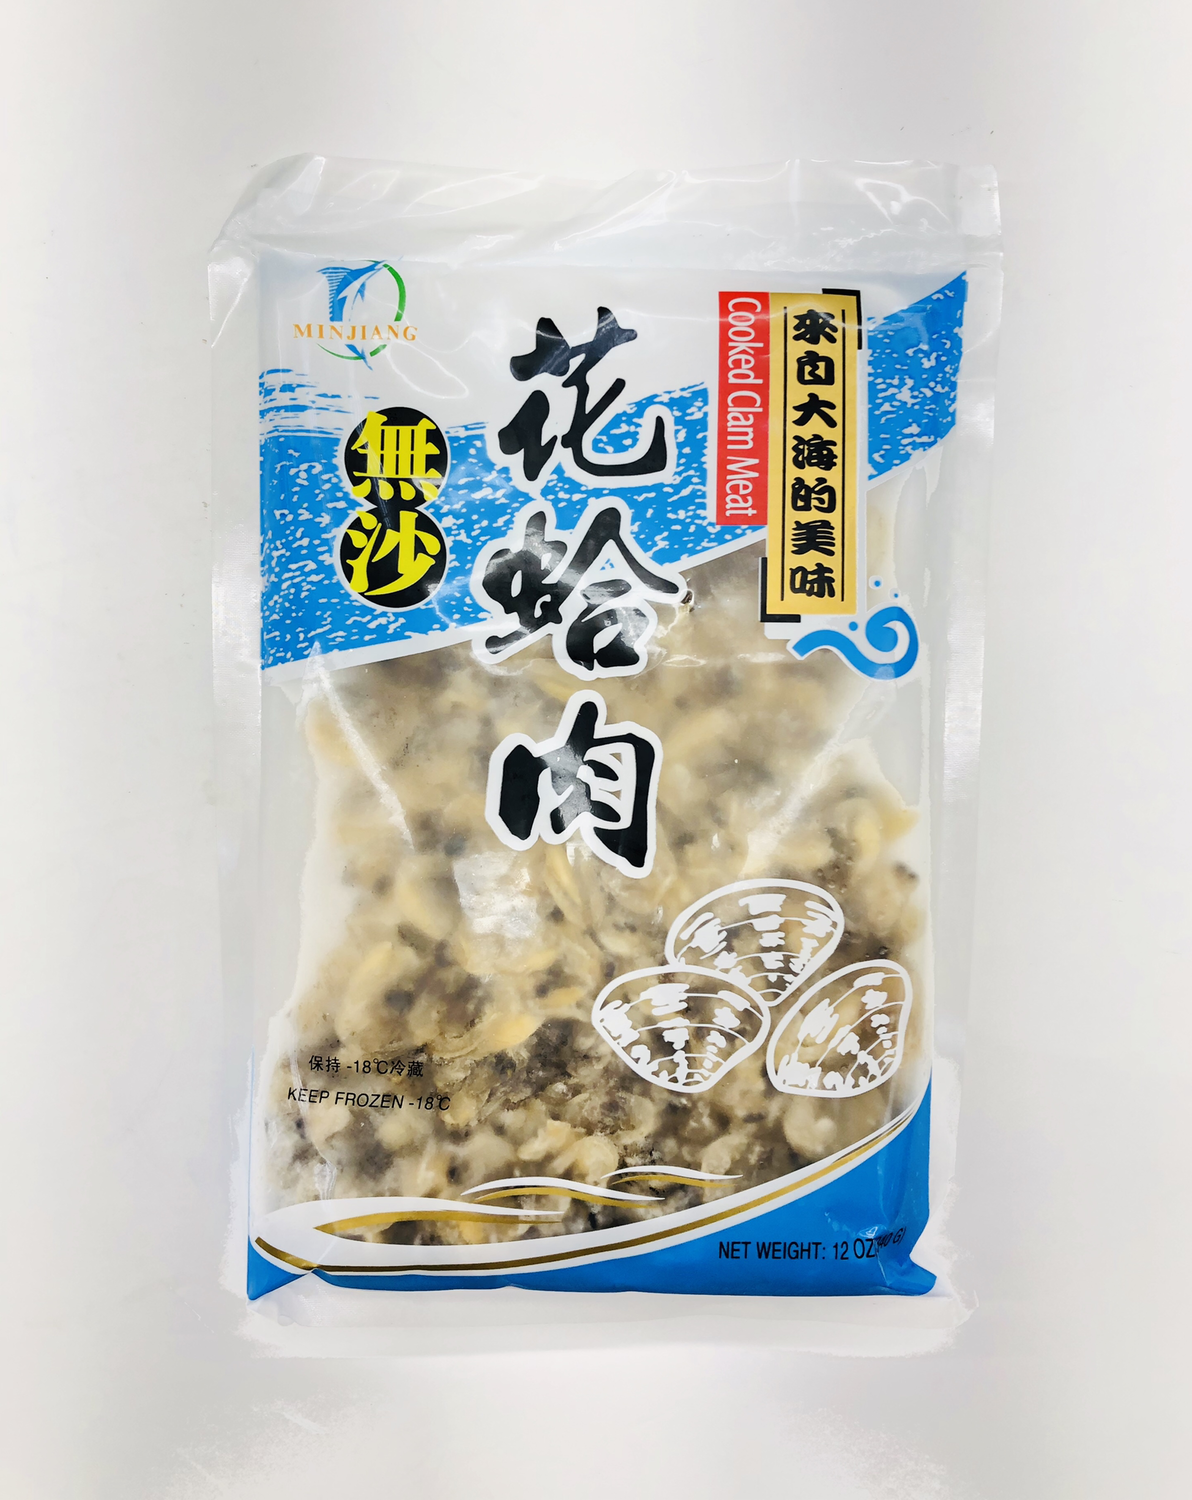 MINJIANG 无沙花蛤肉 Cooked Clam Meat 12OZ(340G)